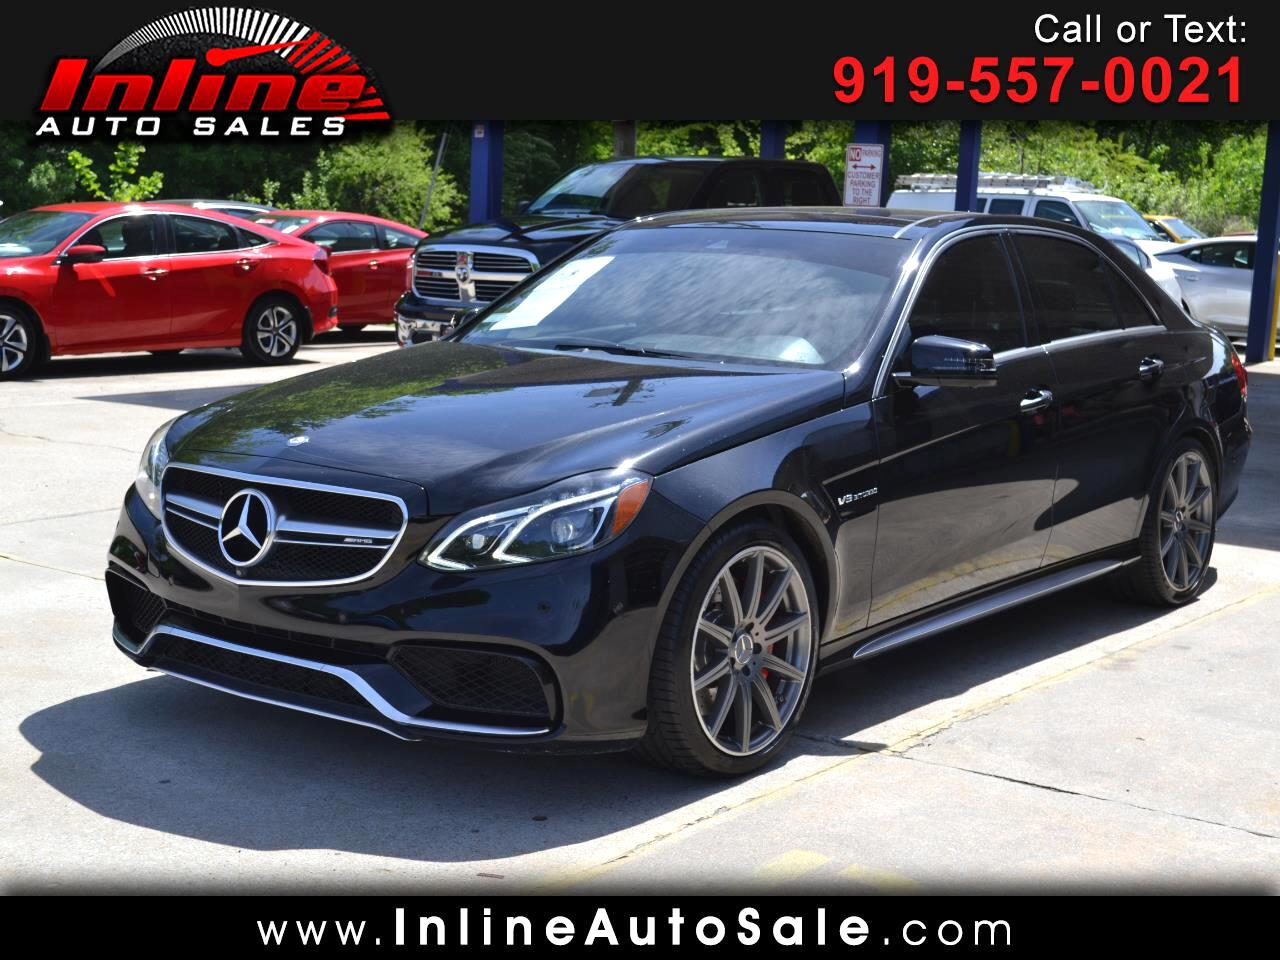 2015 Mercedes-Benz E-Class 4dr Sdn E 63 AMG S-Model 4MATIC